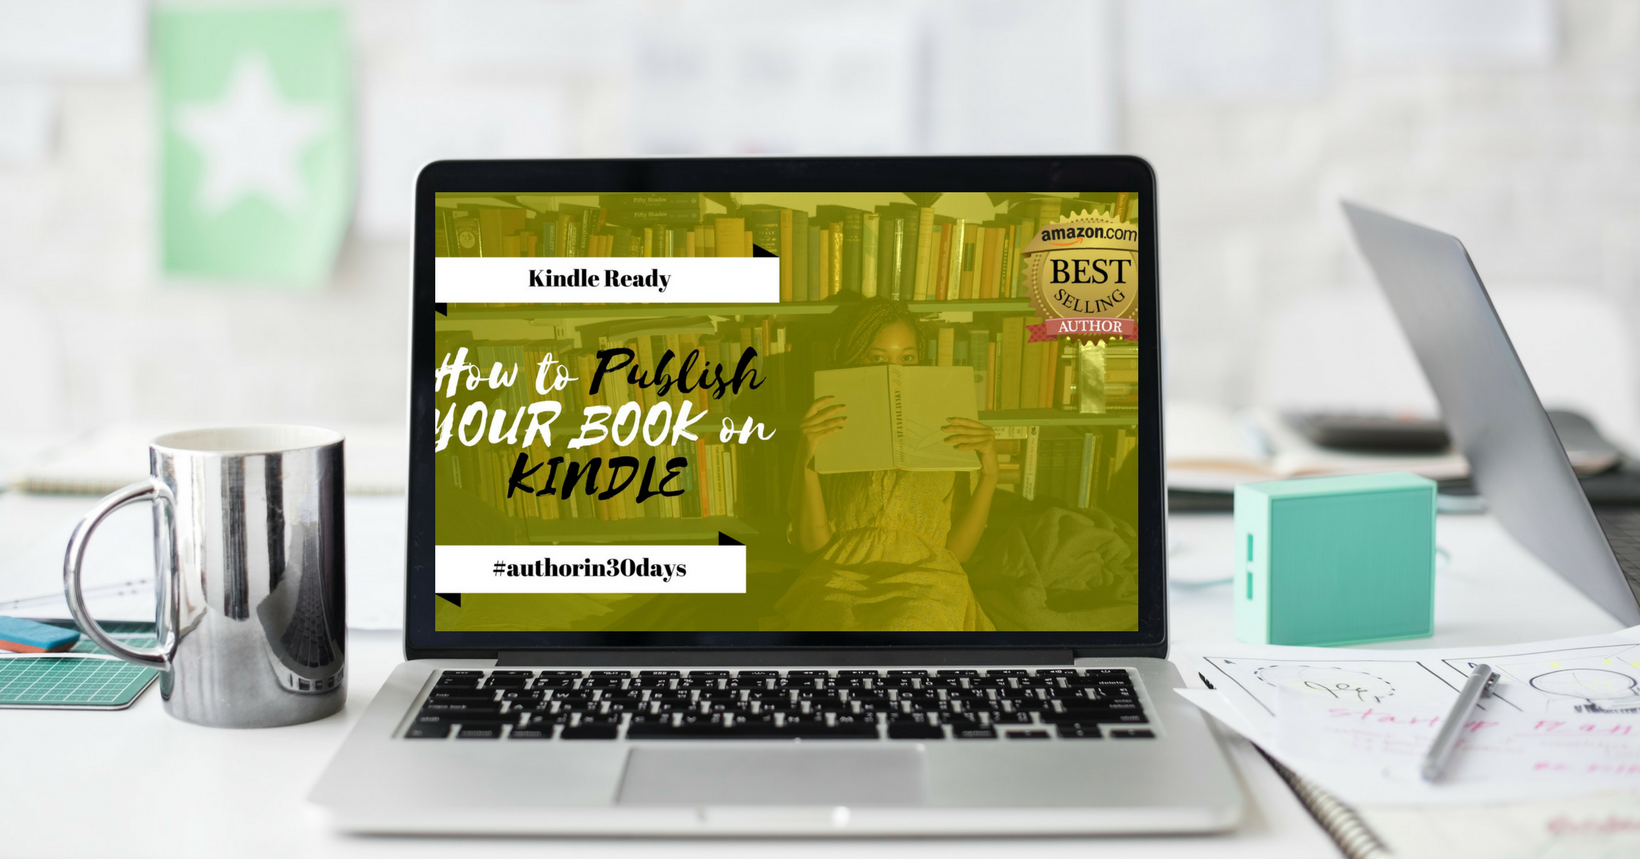 How to Publish Your Book on Kindle Masterclass  Worth $97